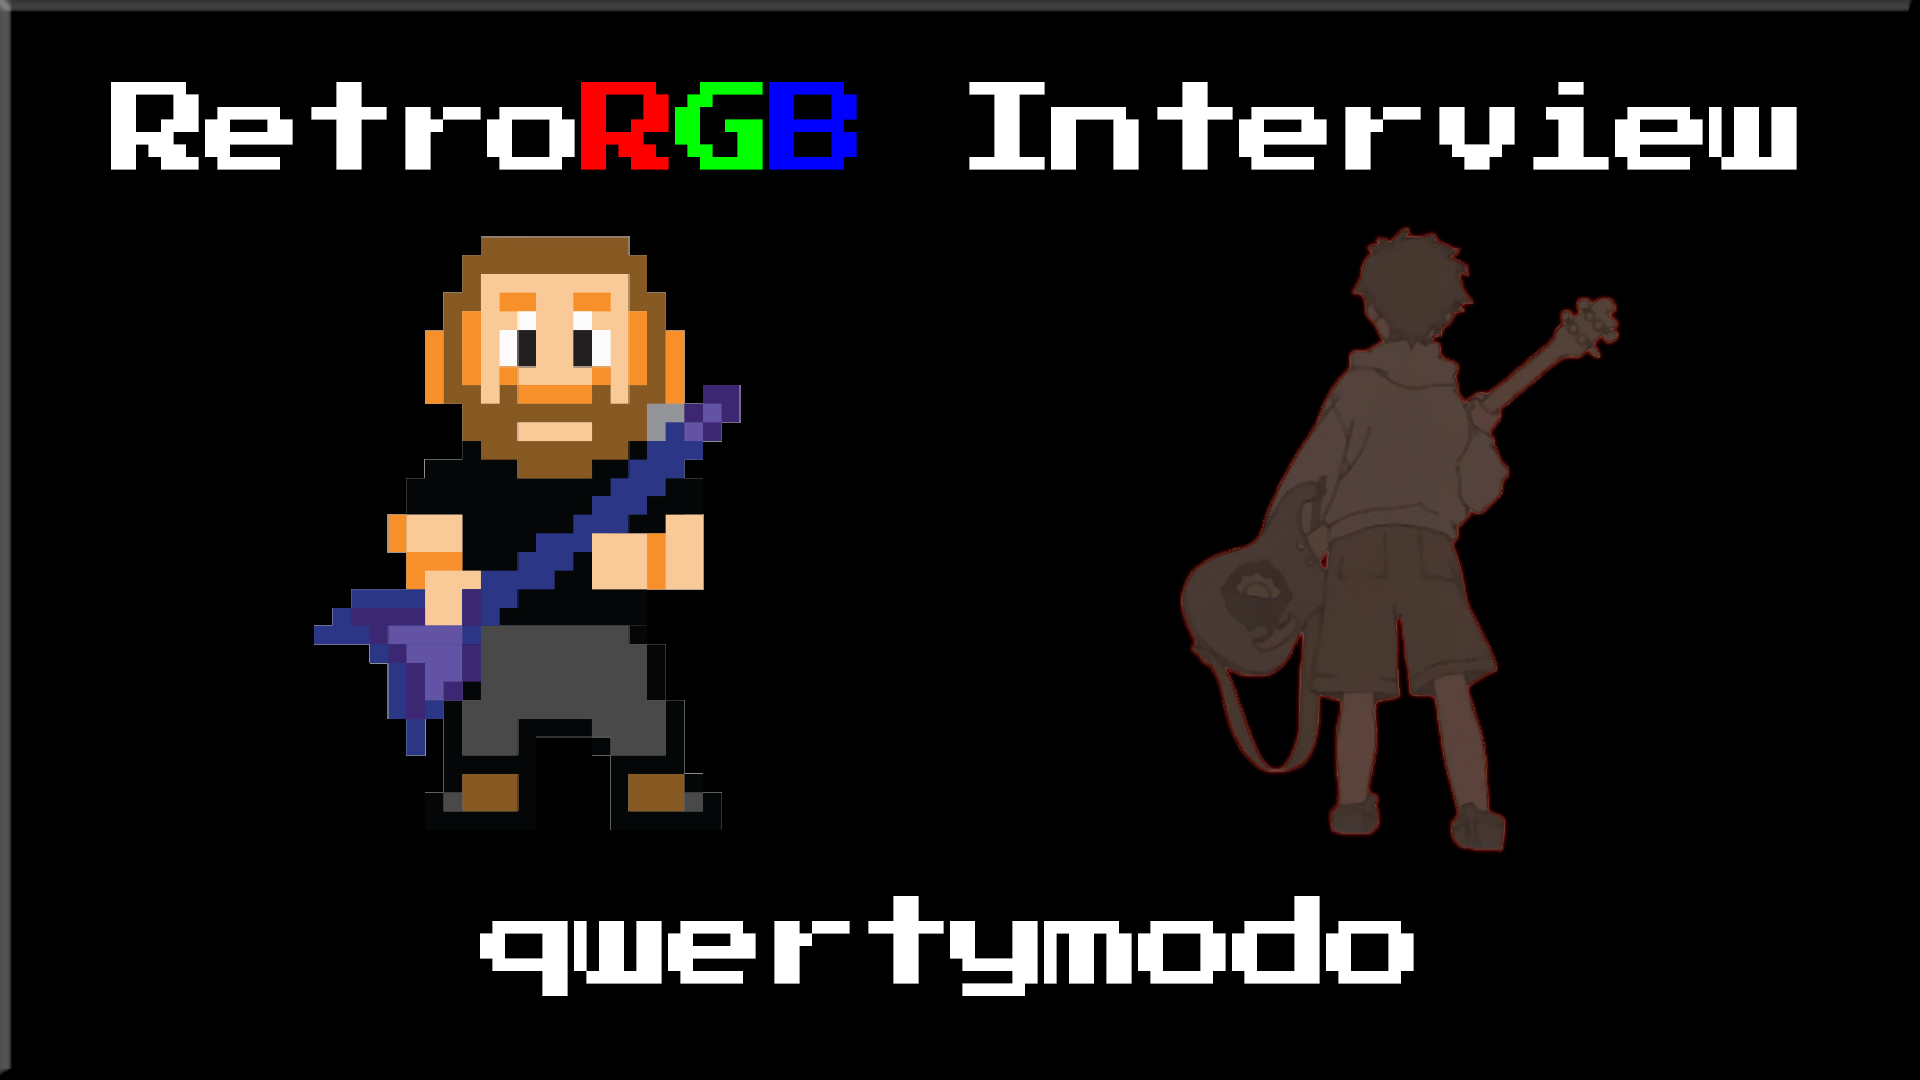 Interview with qwertymodo